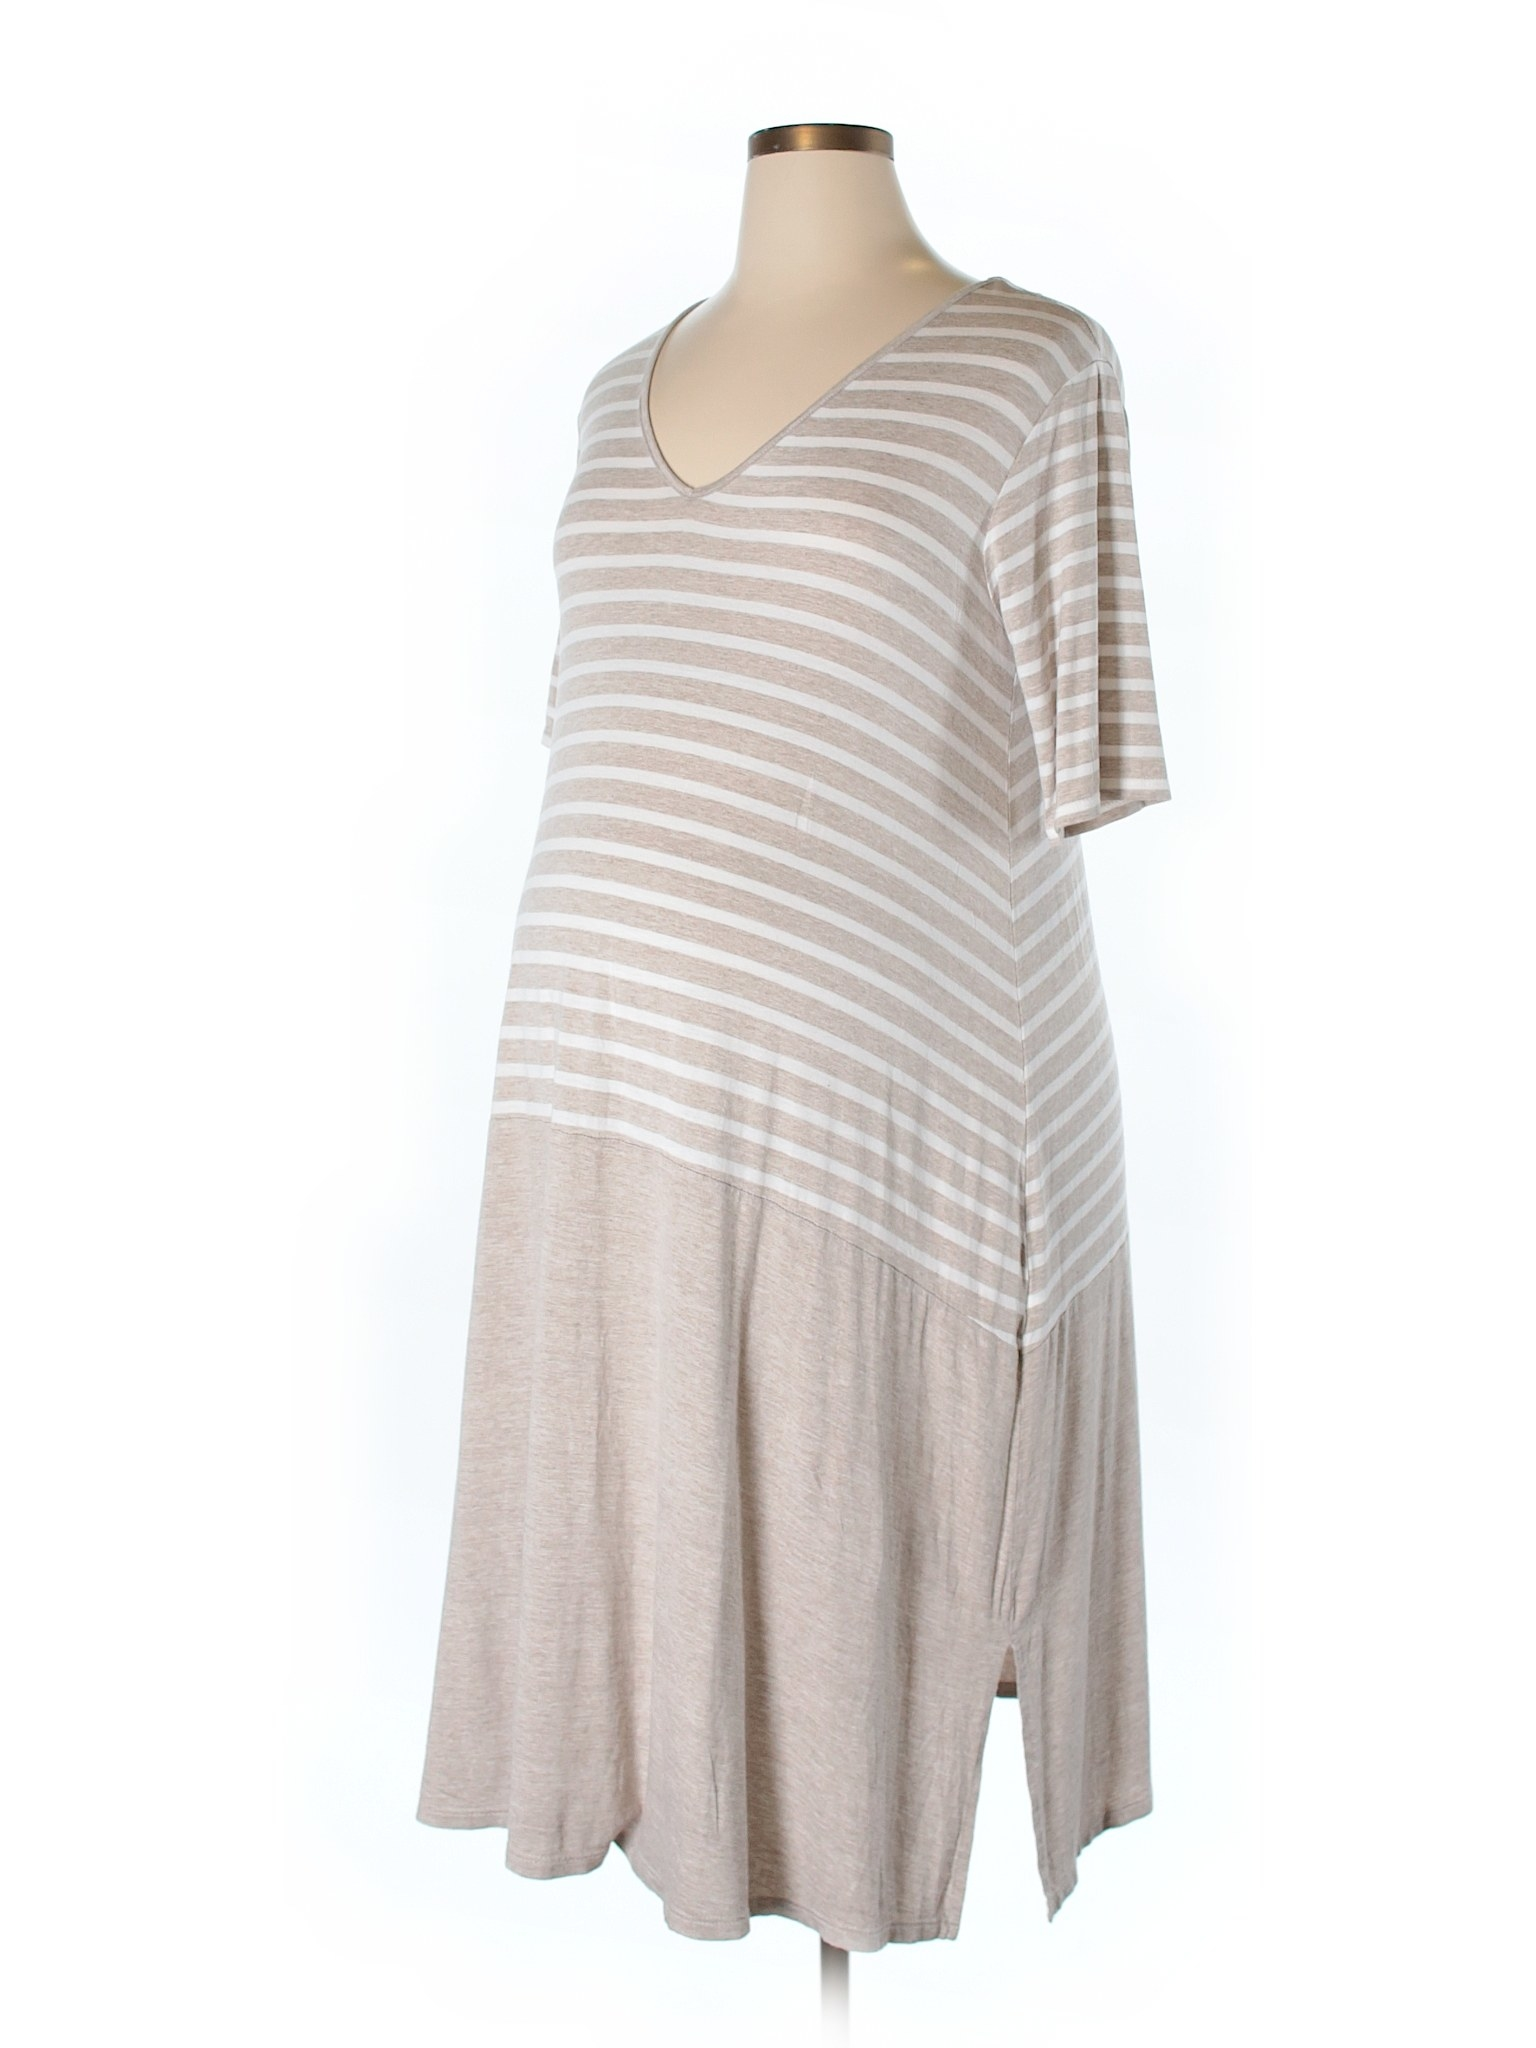 2012de28ad1 32 Of The Best Places To Buy Maternity Clothing Online